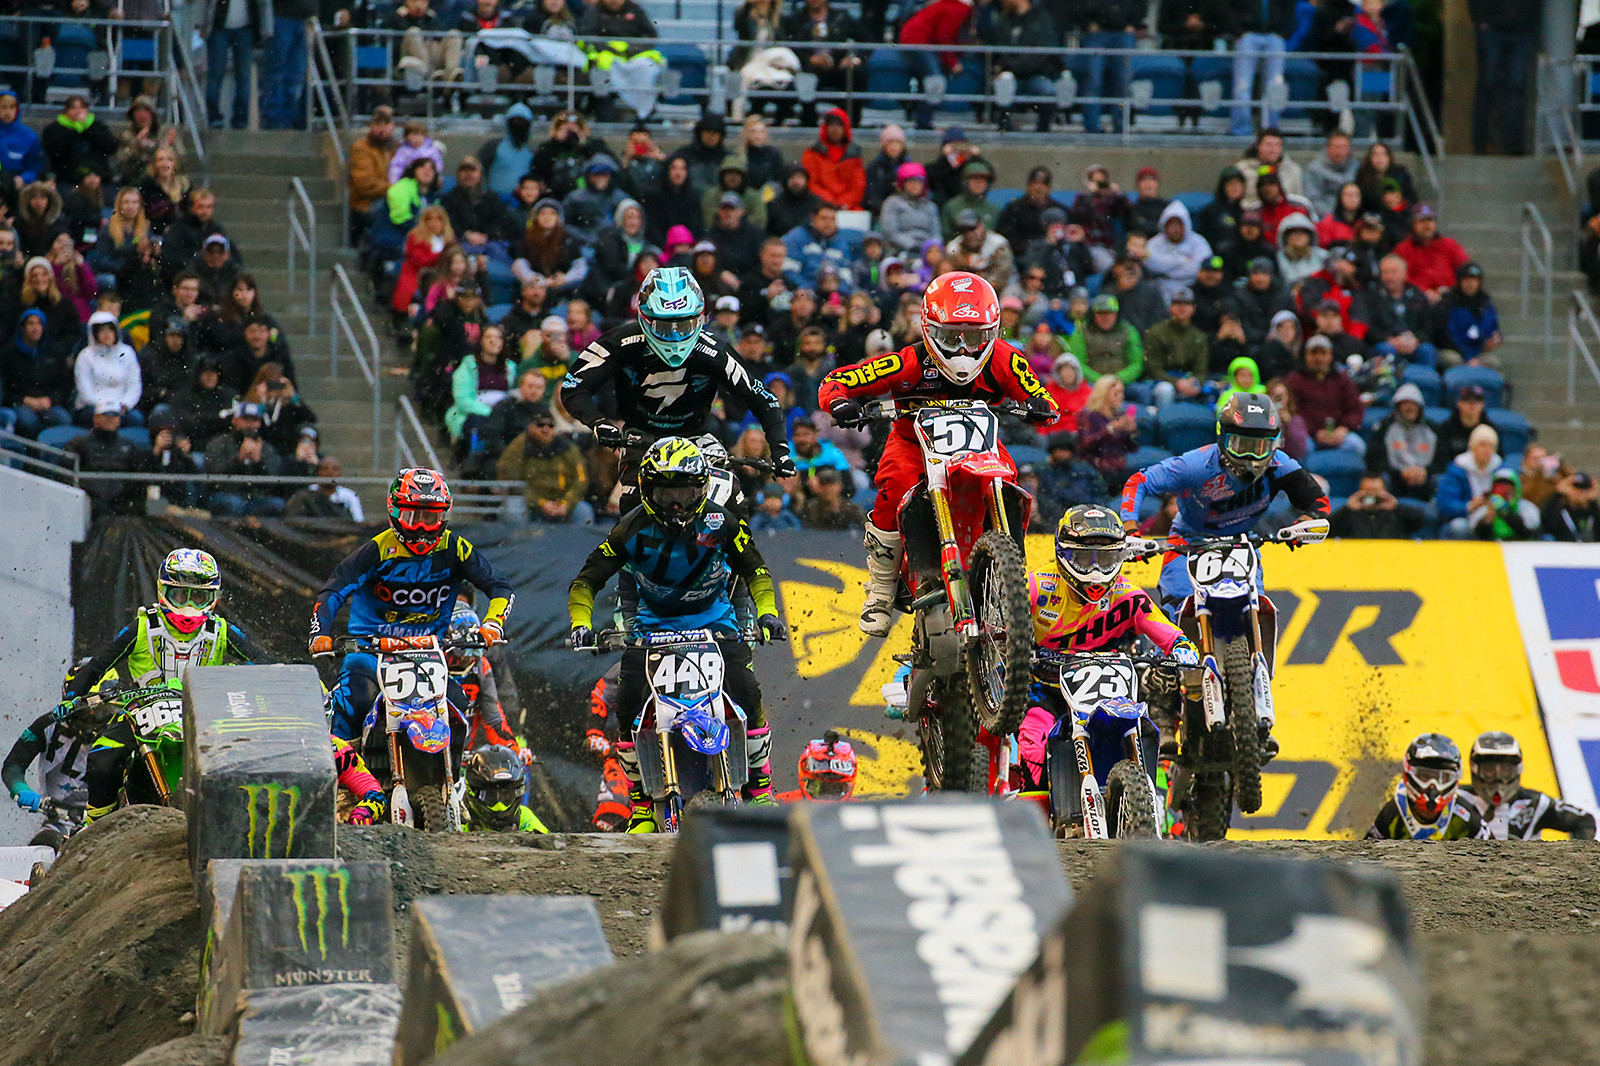 Photo Blast from Seattle, and Jimmy DeCotis goes to the front - Photo Blast: Seattle - Motocross Pictures - Vital MX